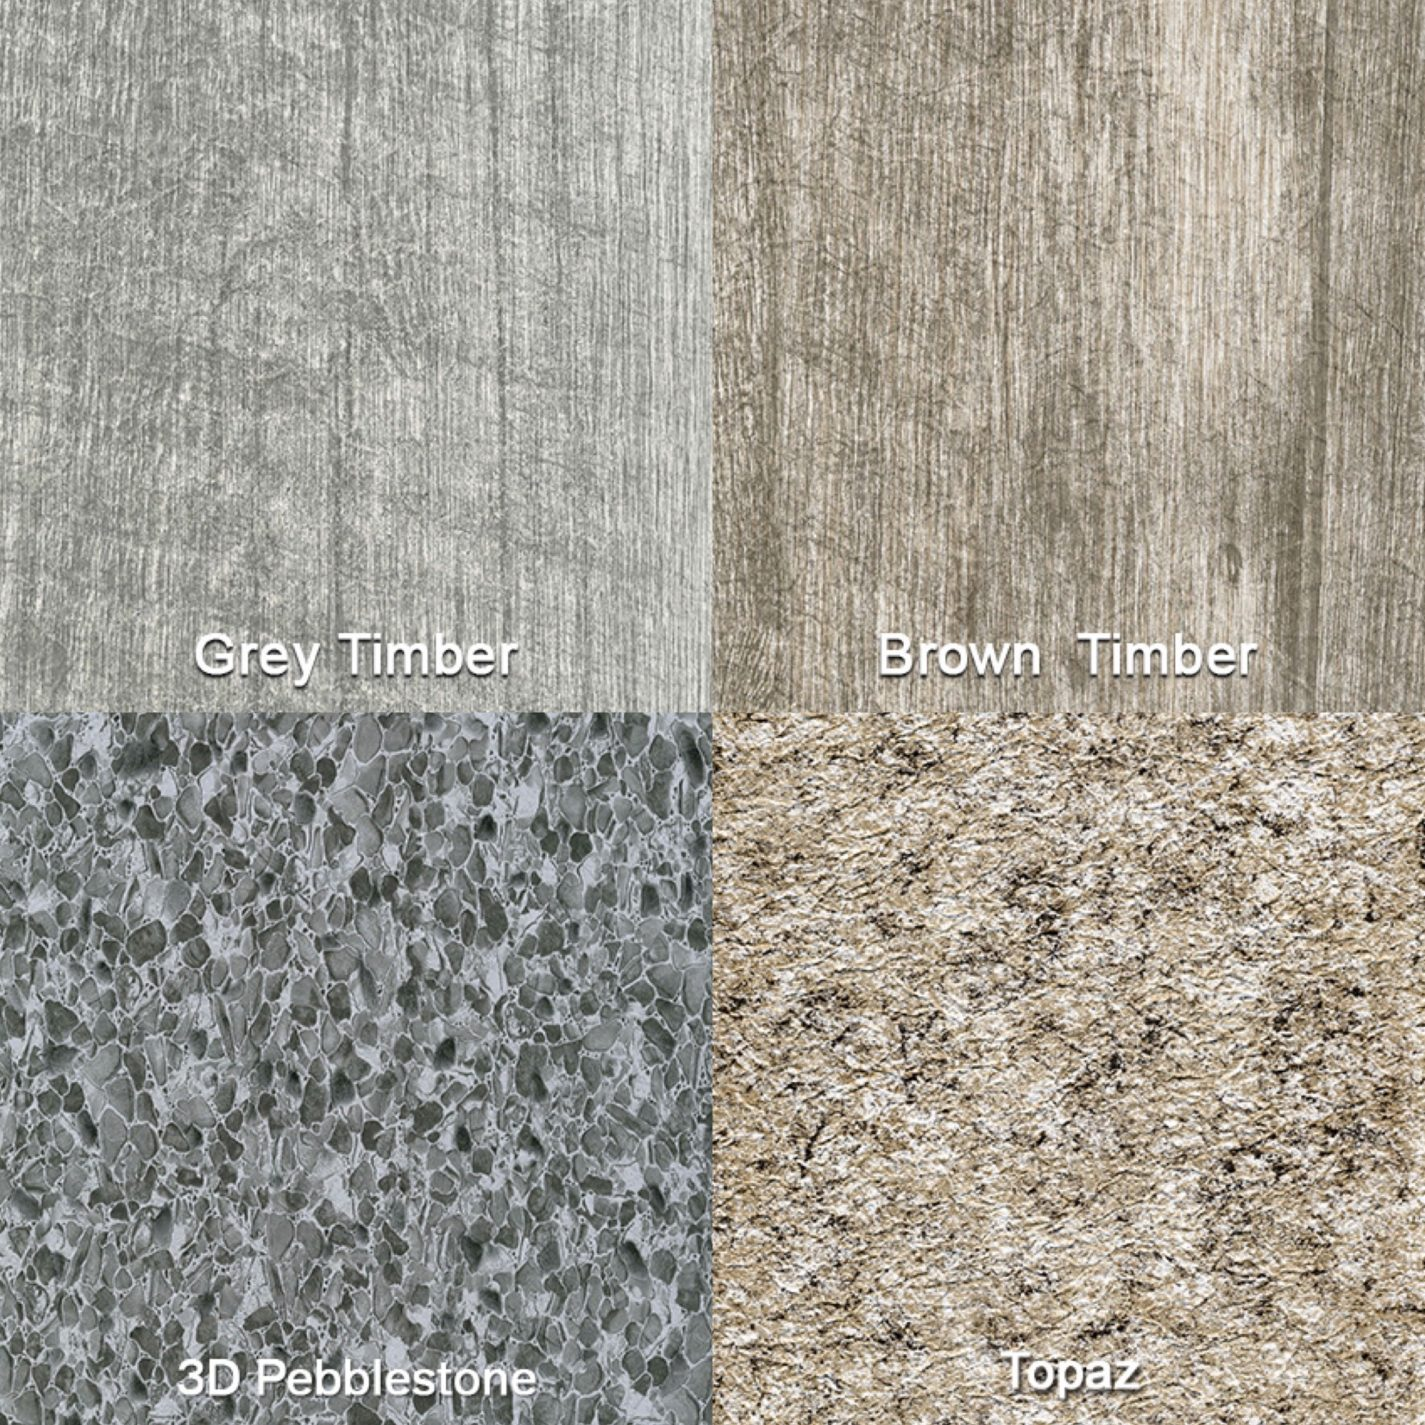 4 Econodek vinyl decking colors; 3D pepplestone, topaz and grey and brown timber